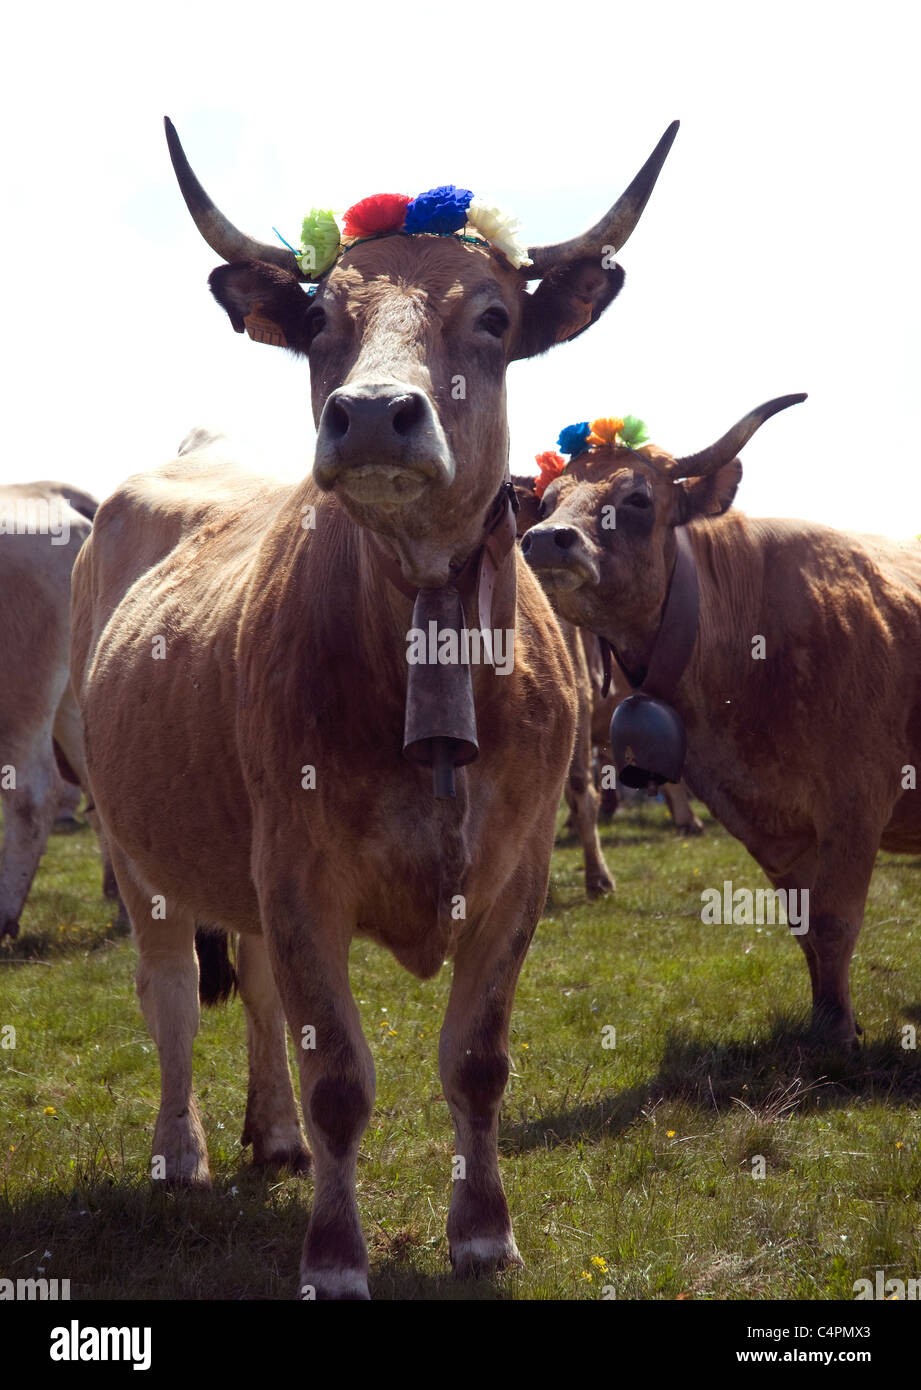 Paper flowers adorn the horns of an Aubrac cow during the annual Fête de Transhumance, i.e.moving herds to/from - Stock Image